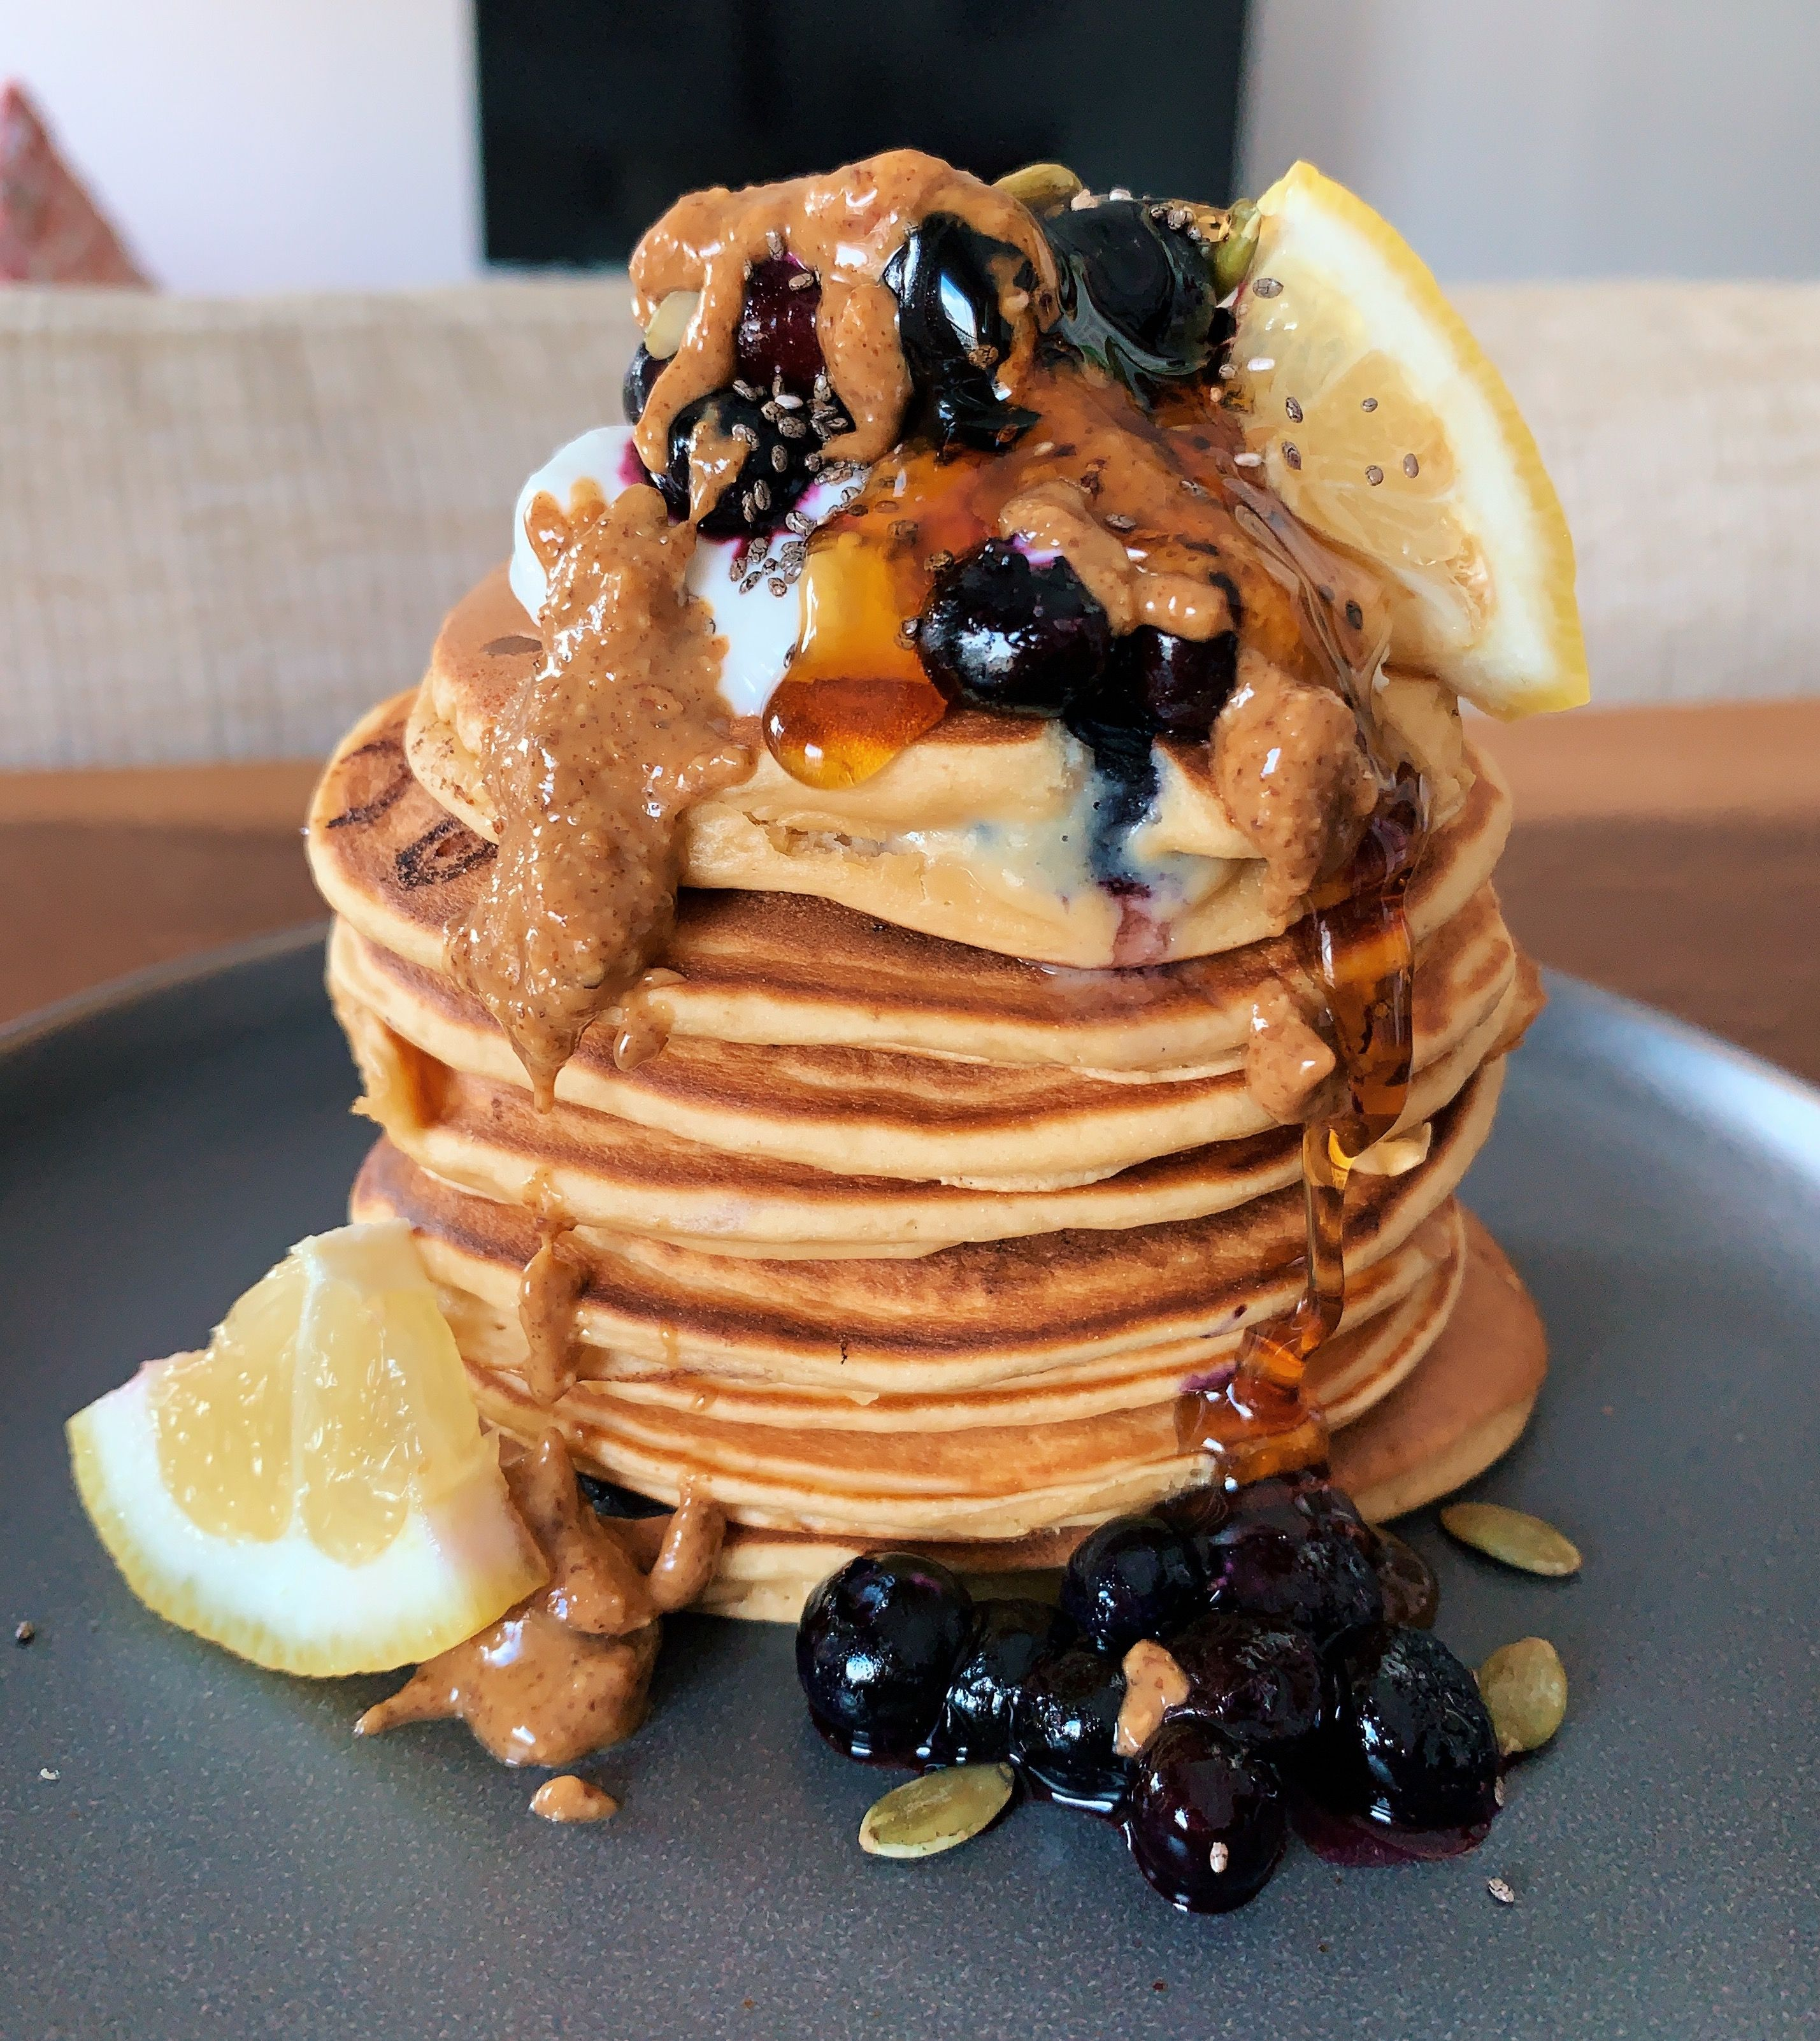 Emma Abrahamson's Massive Stack of Pancakes Is Here to Make Your Morning Brighter